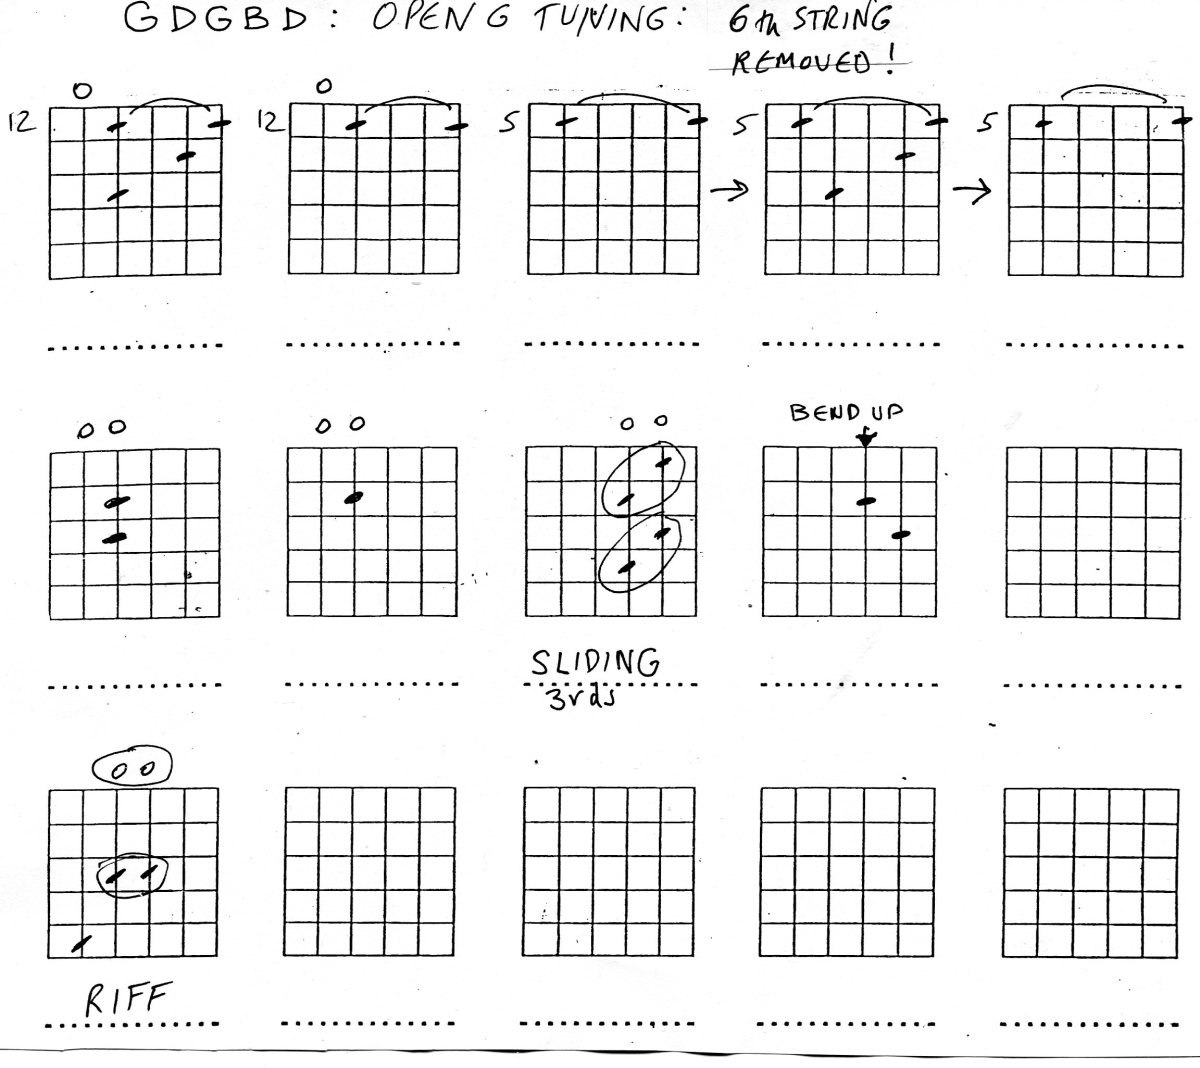 Guitar Open G Tuning—Keith Richards